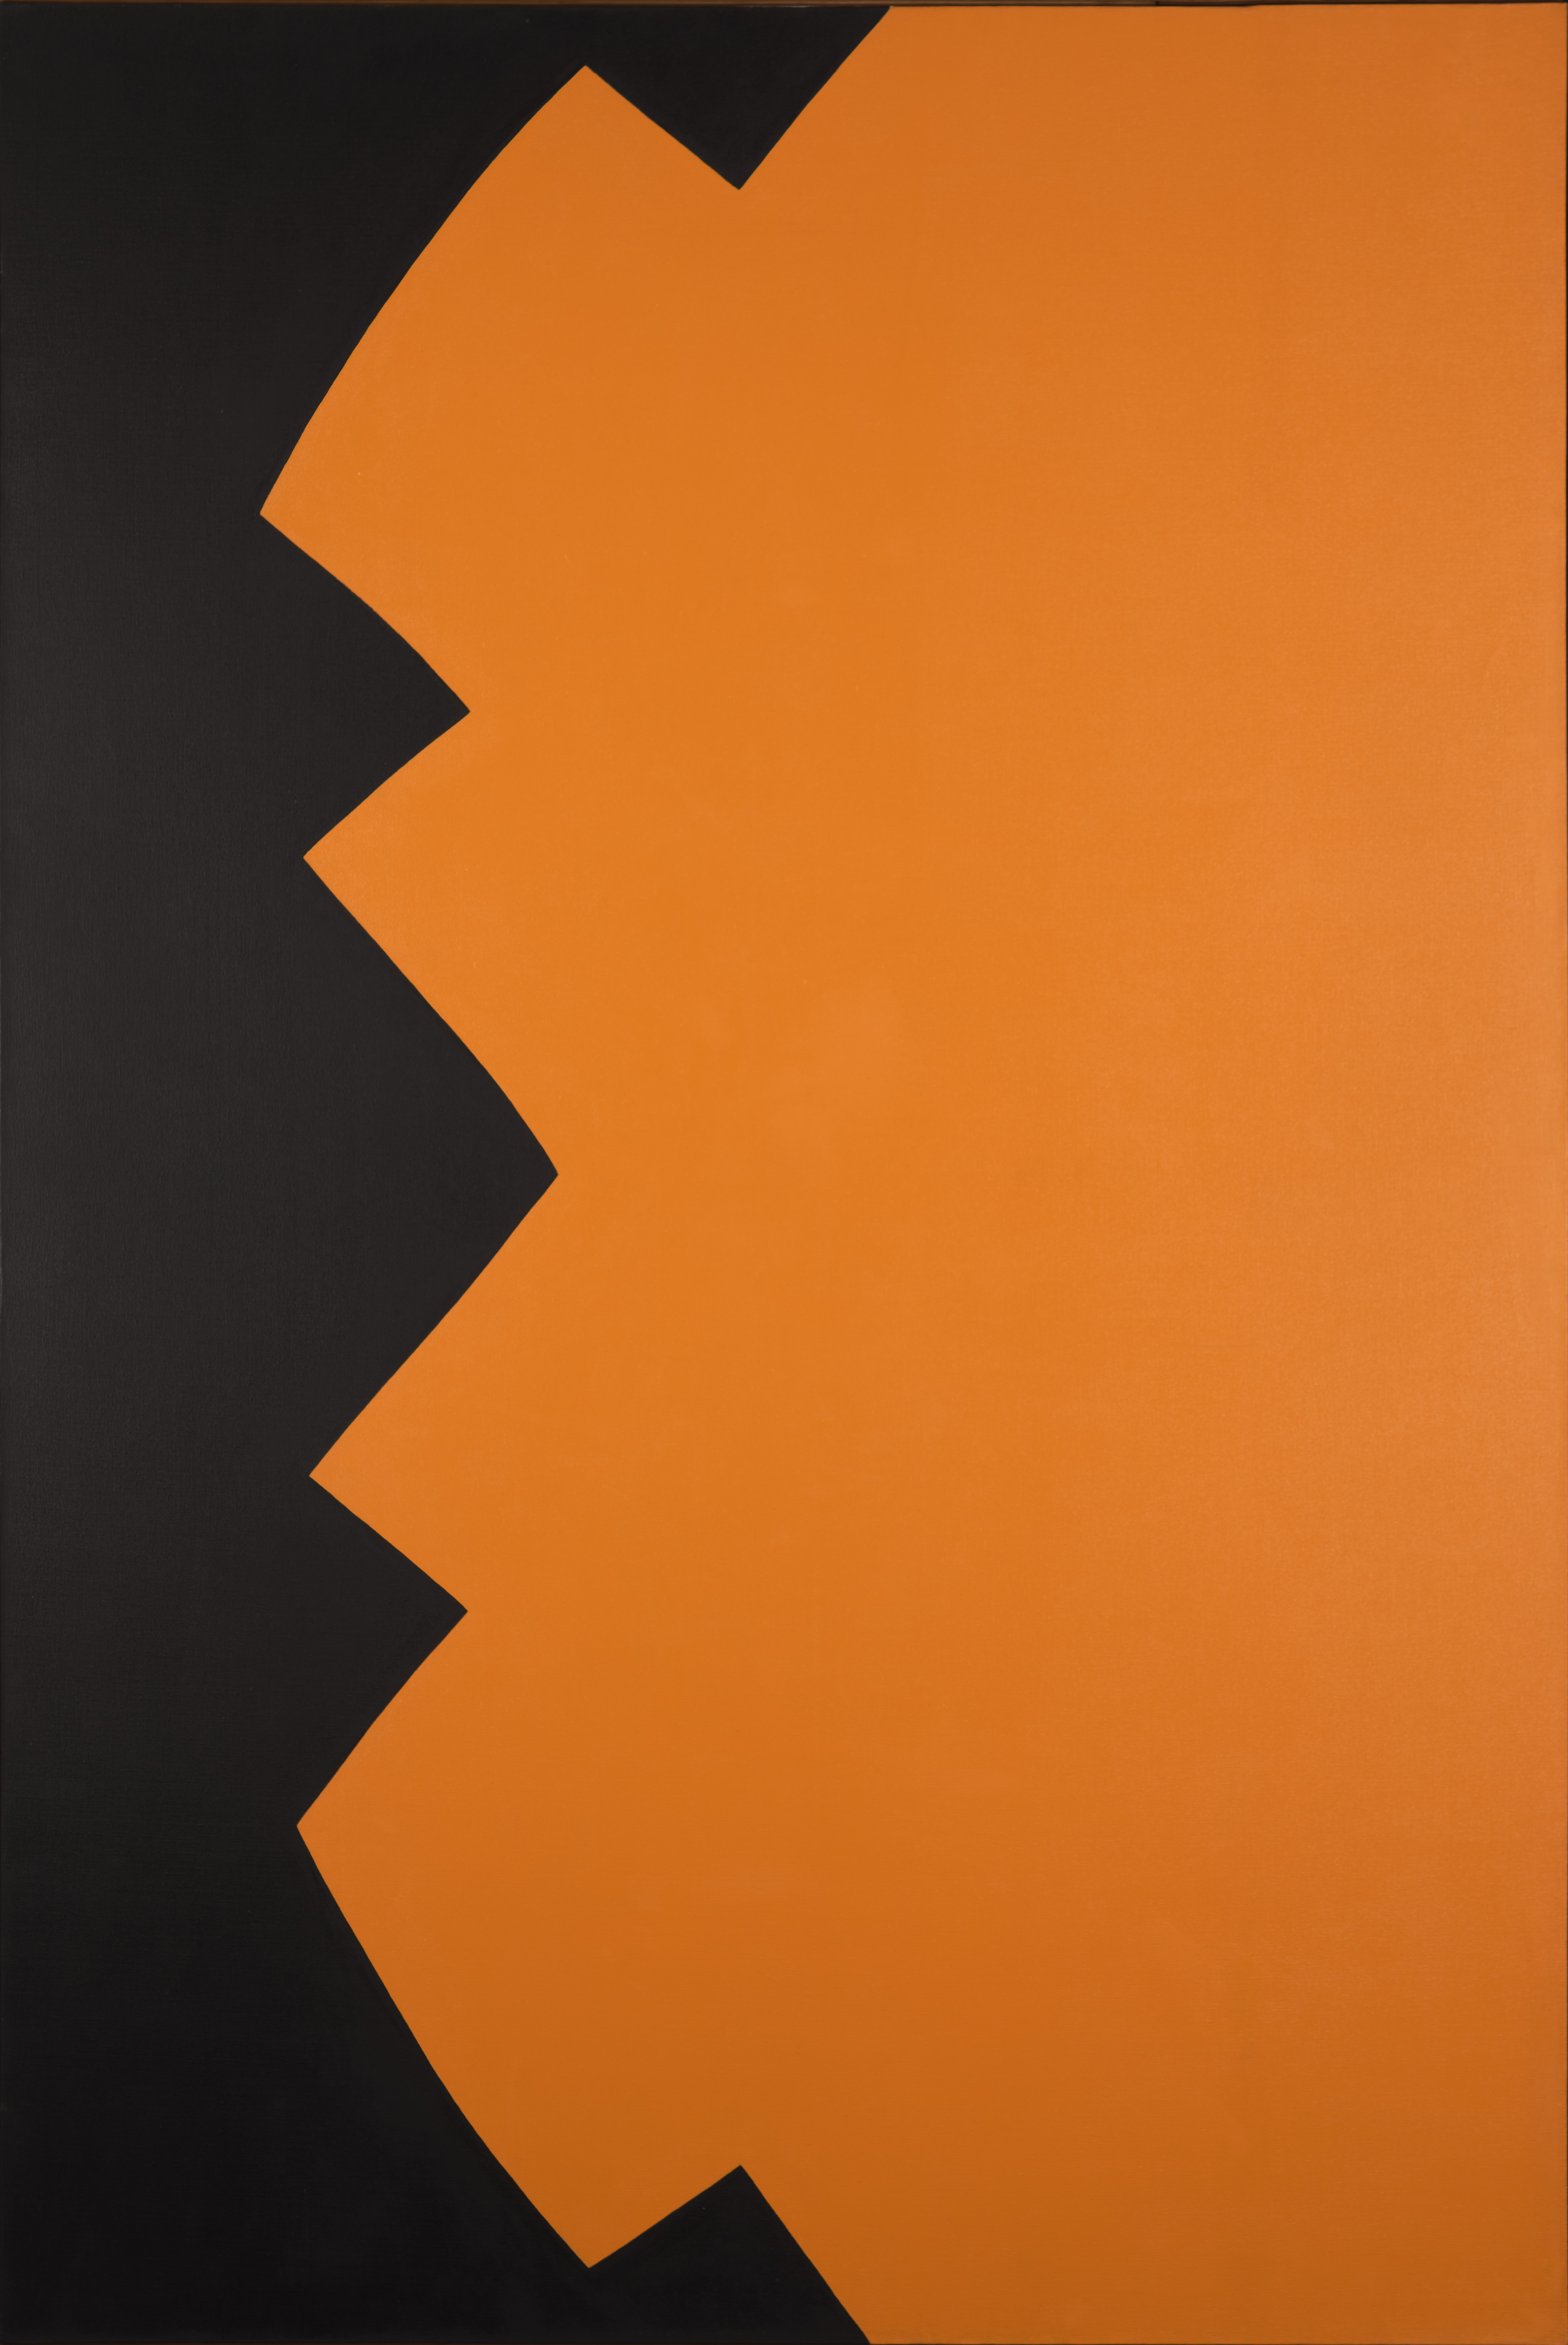 Leon Polk Smith, Correspondence in Black Yellow, 1963